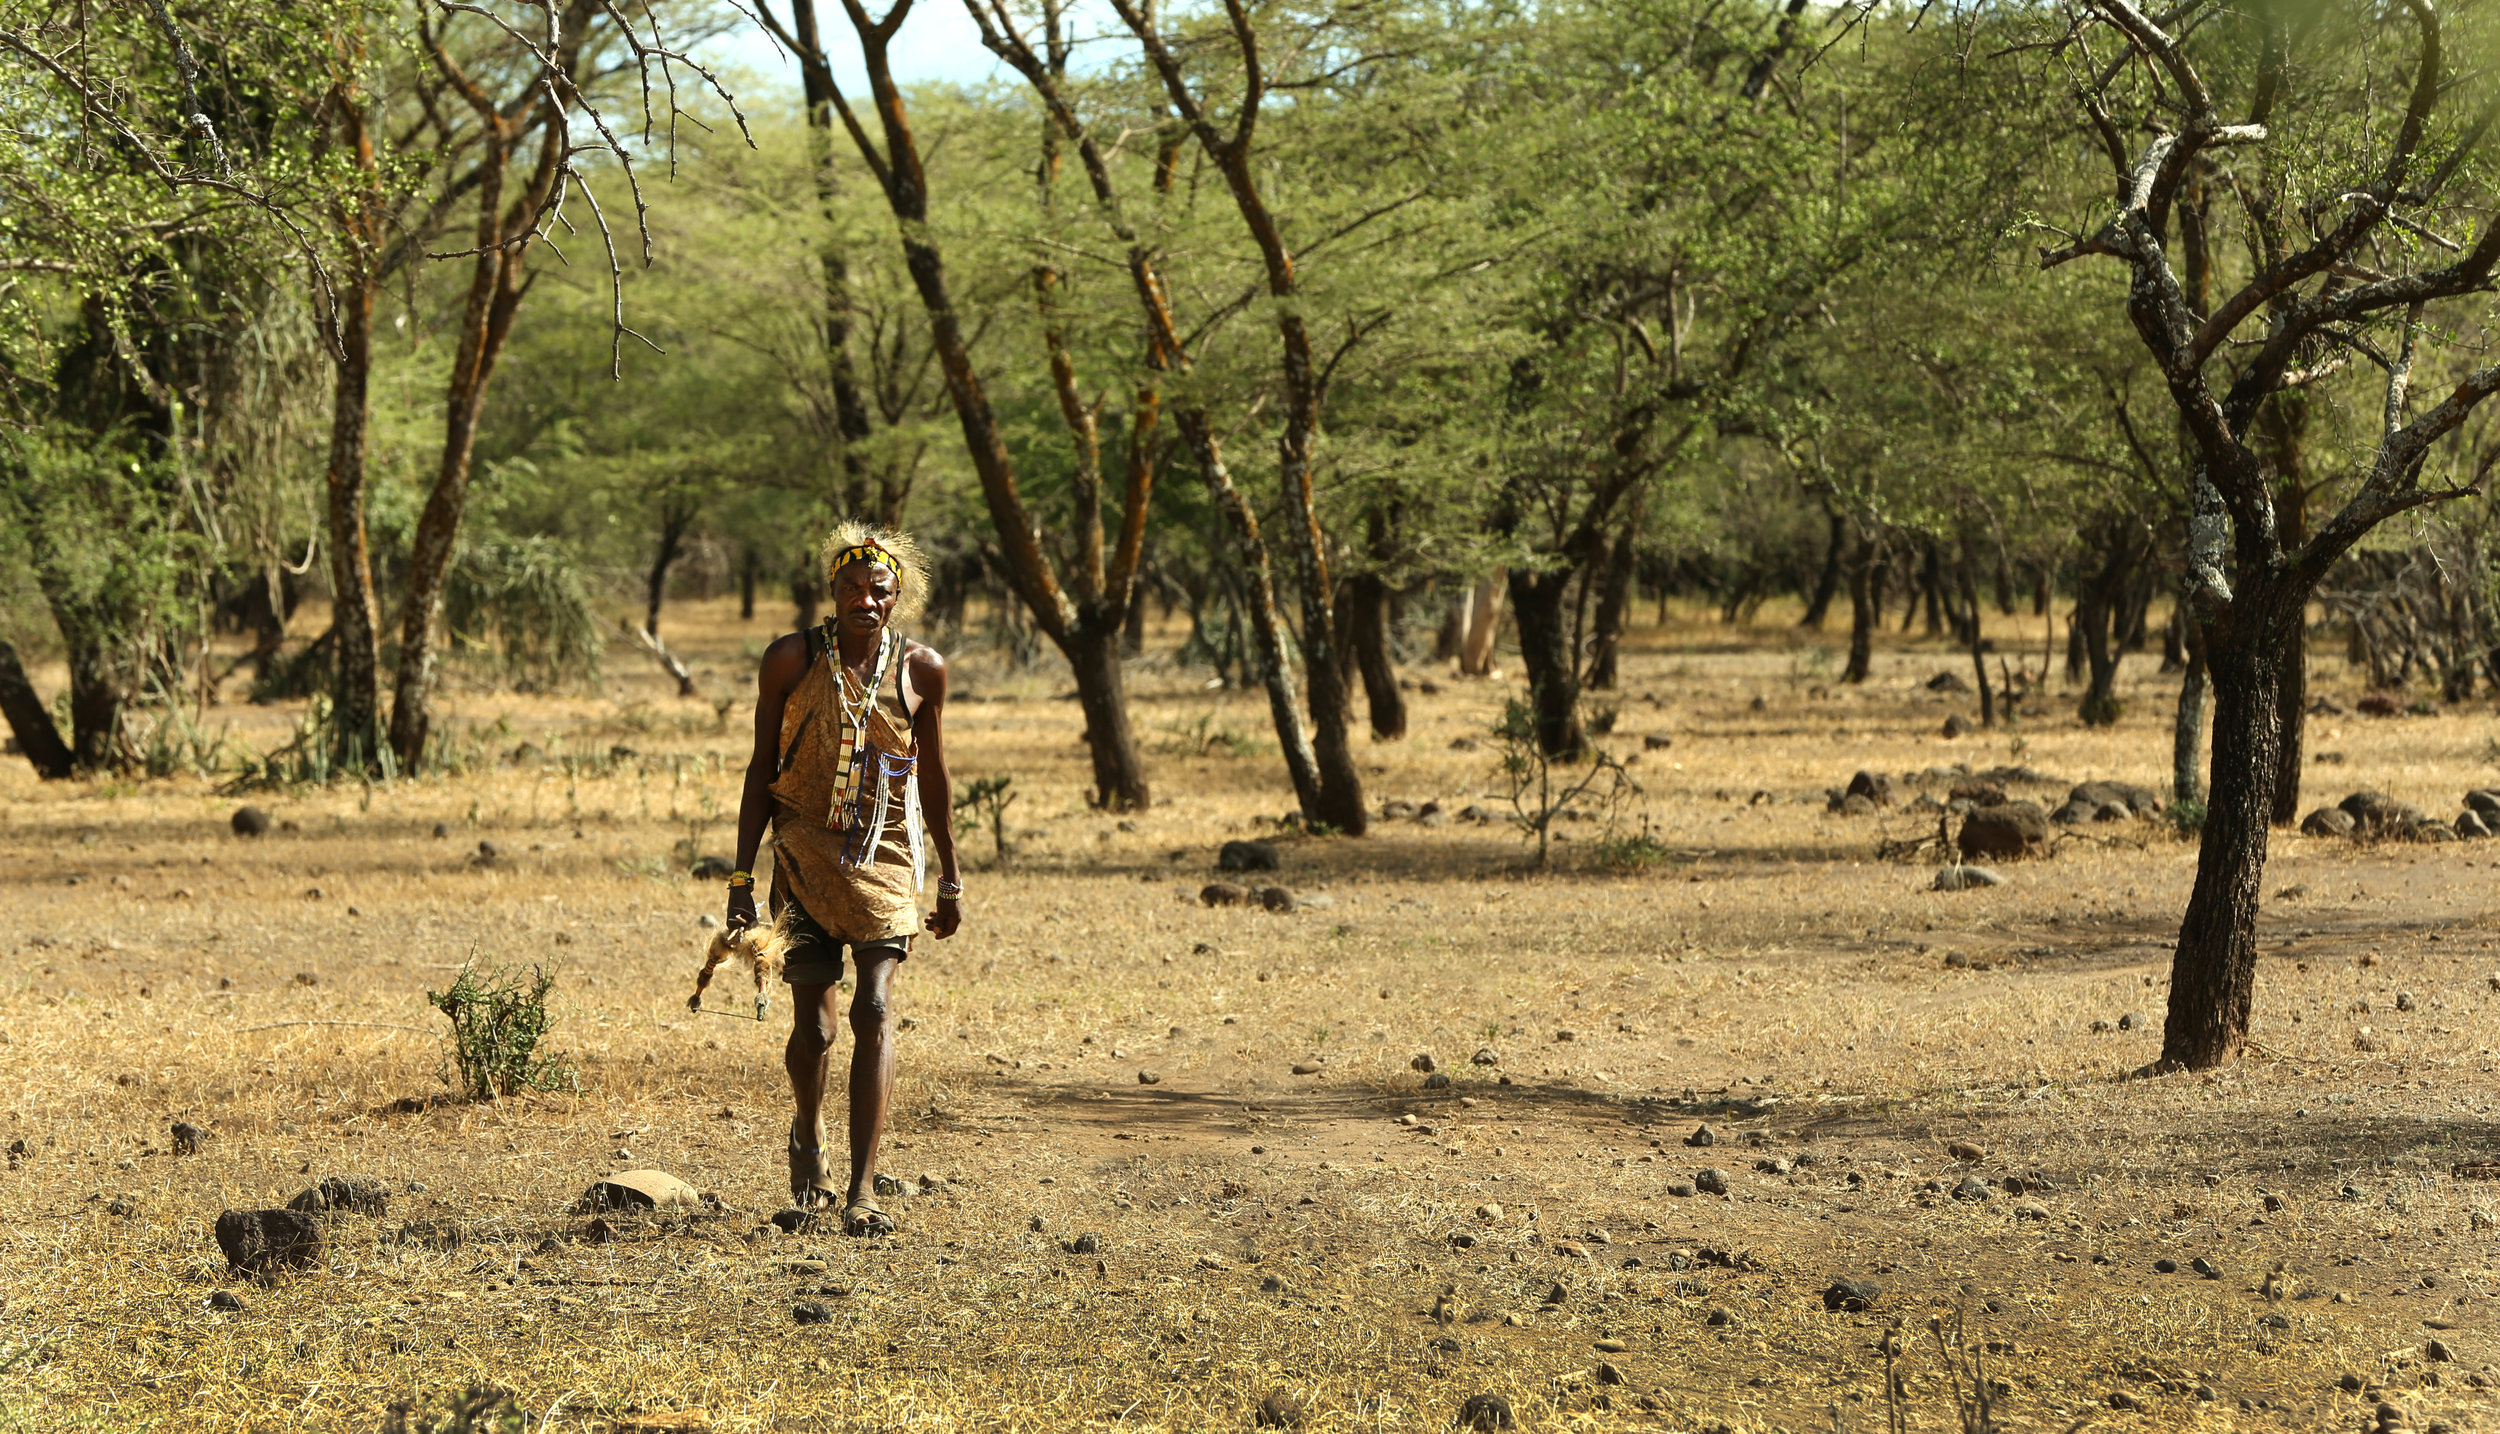 Hadza Chief Walking.jpg